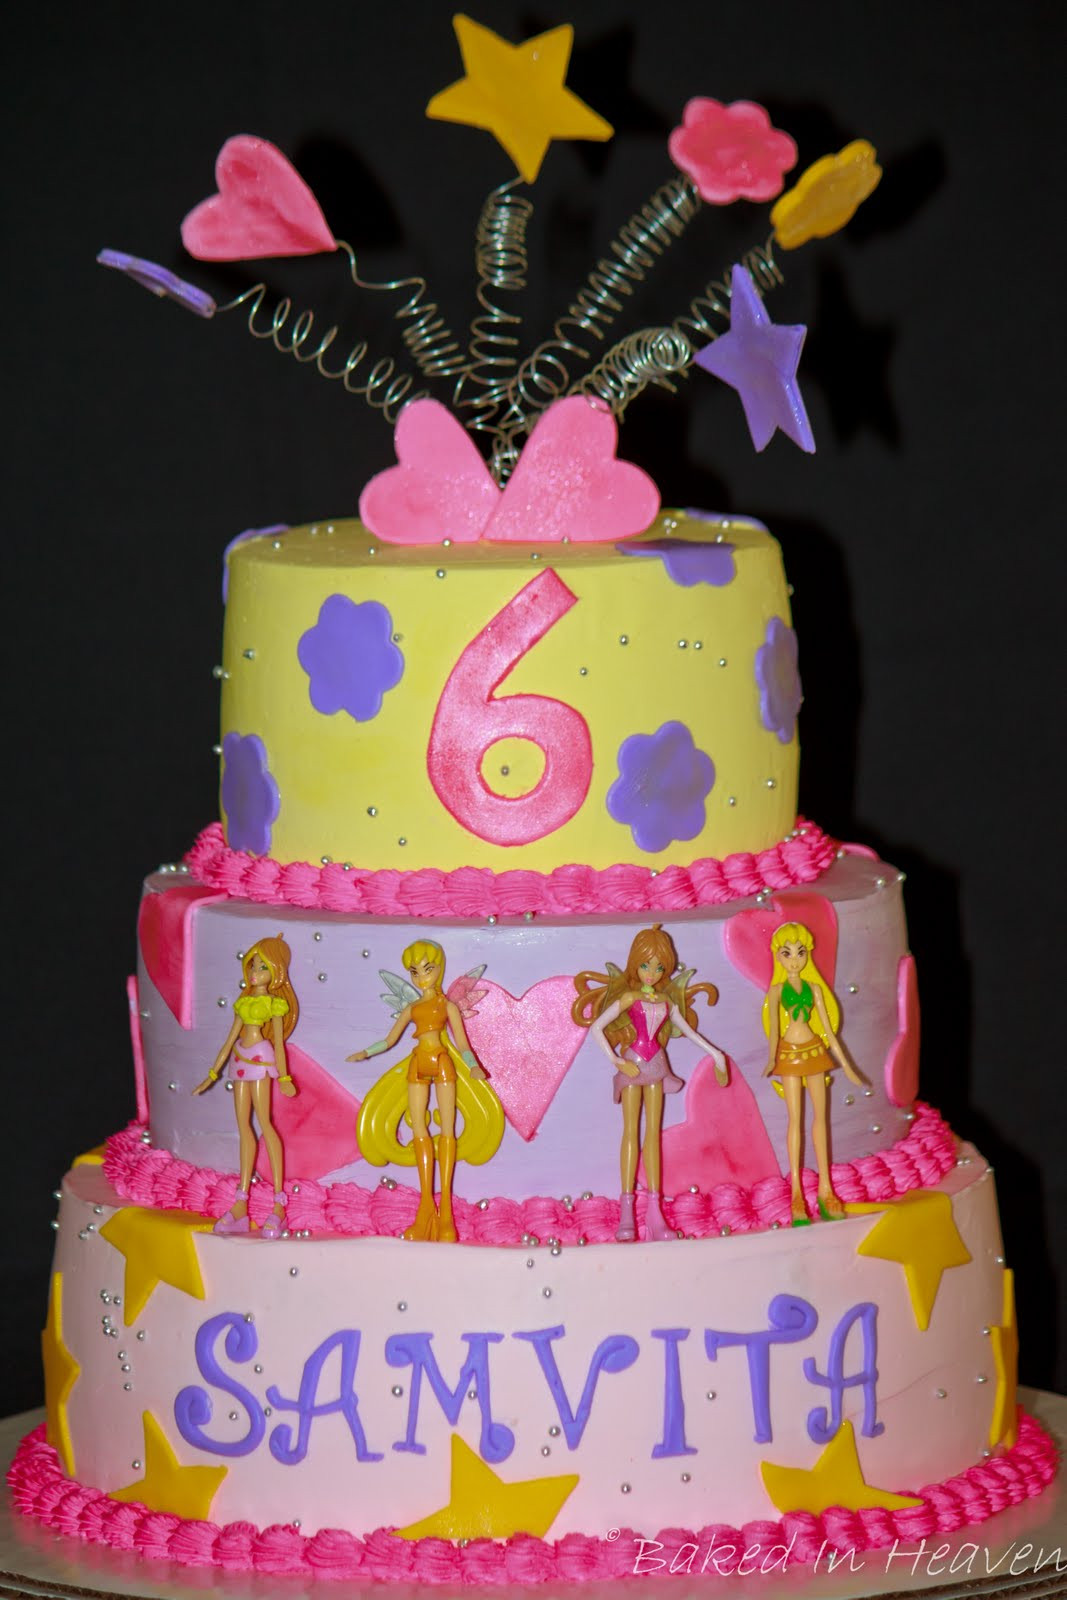 Best ideas about Cake Birthday . Save or Pin Birthday cakes Baked In Heaven Now.